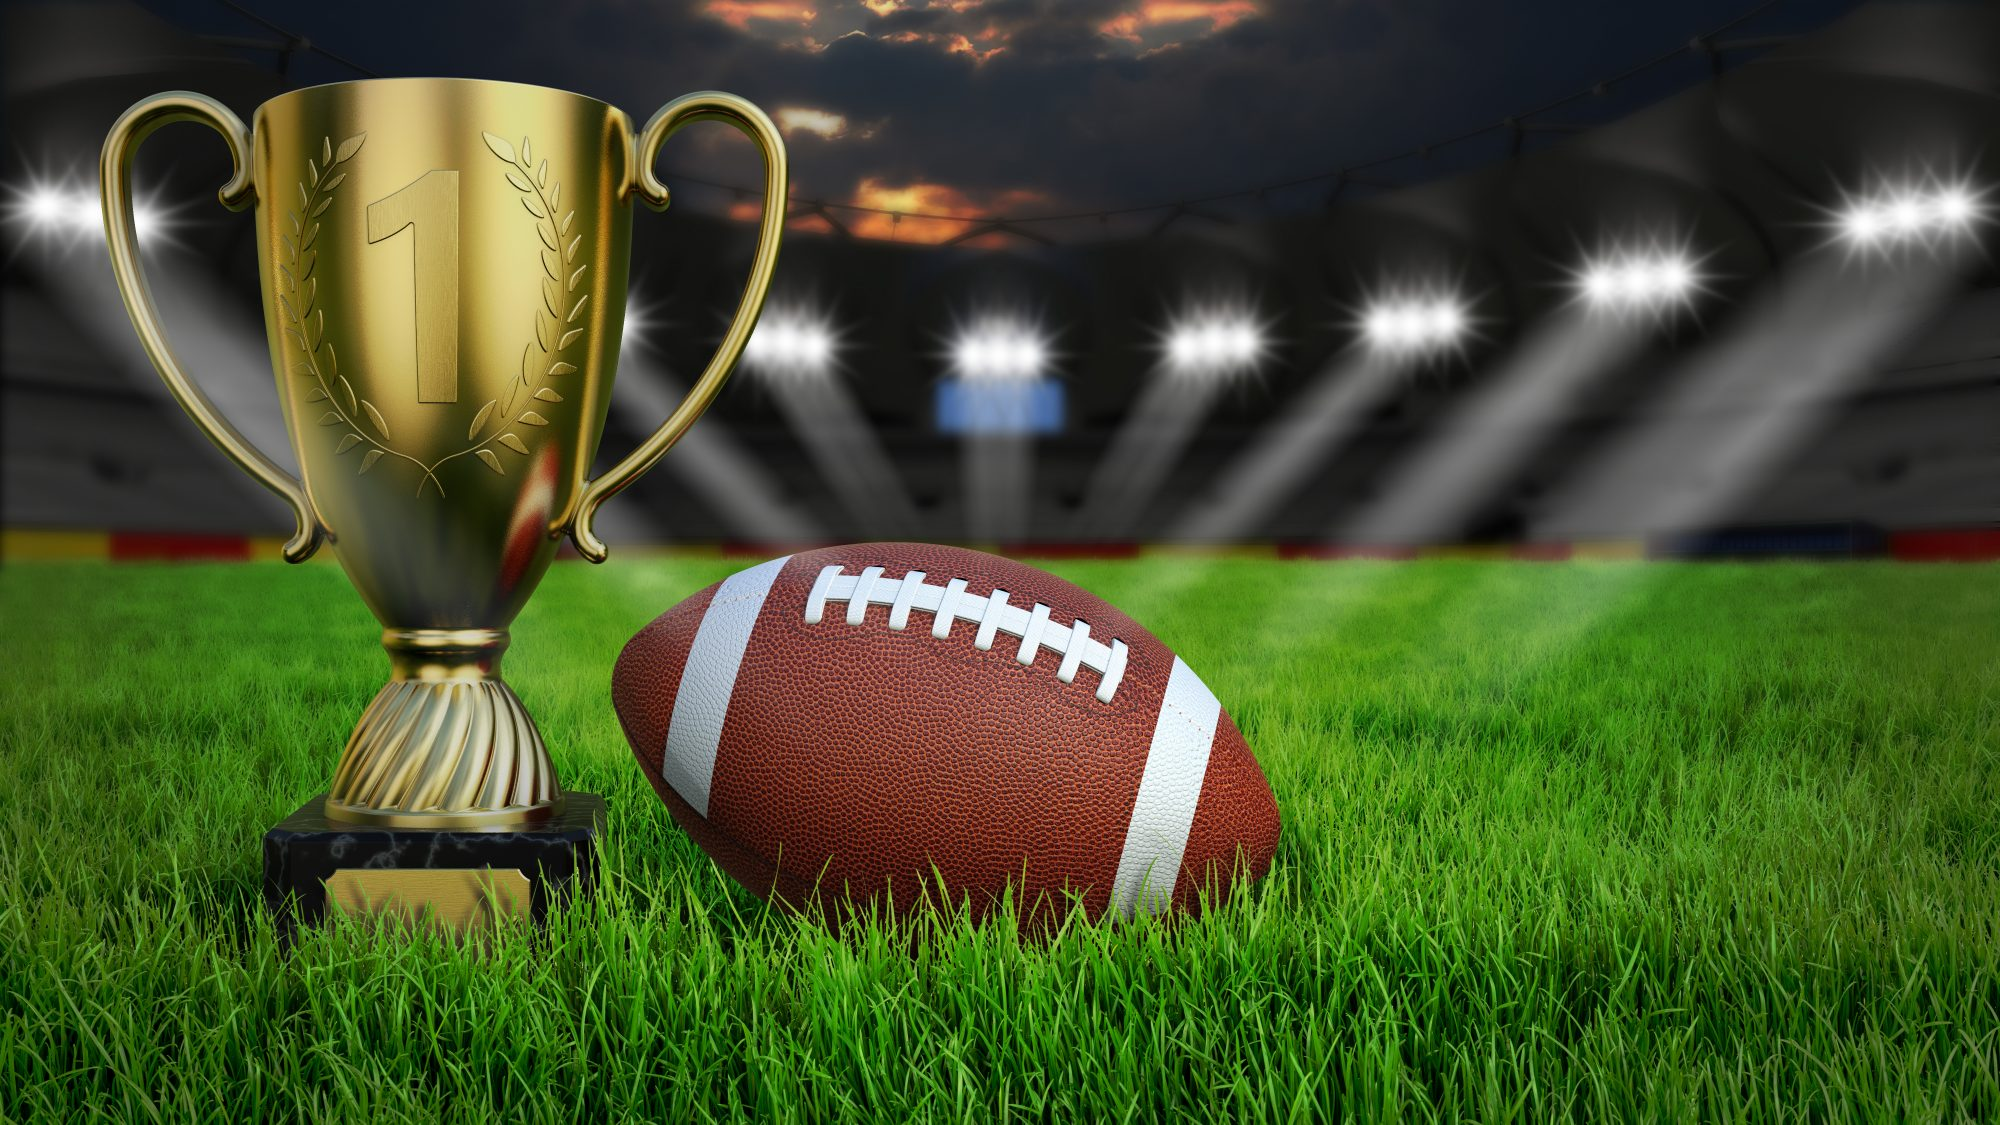 Football and Trophy on Field